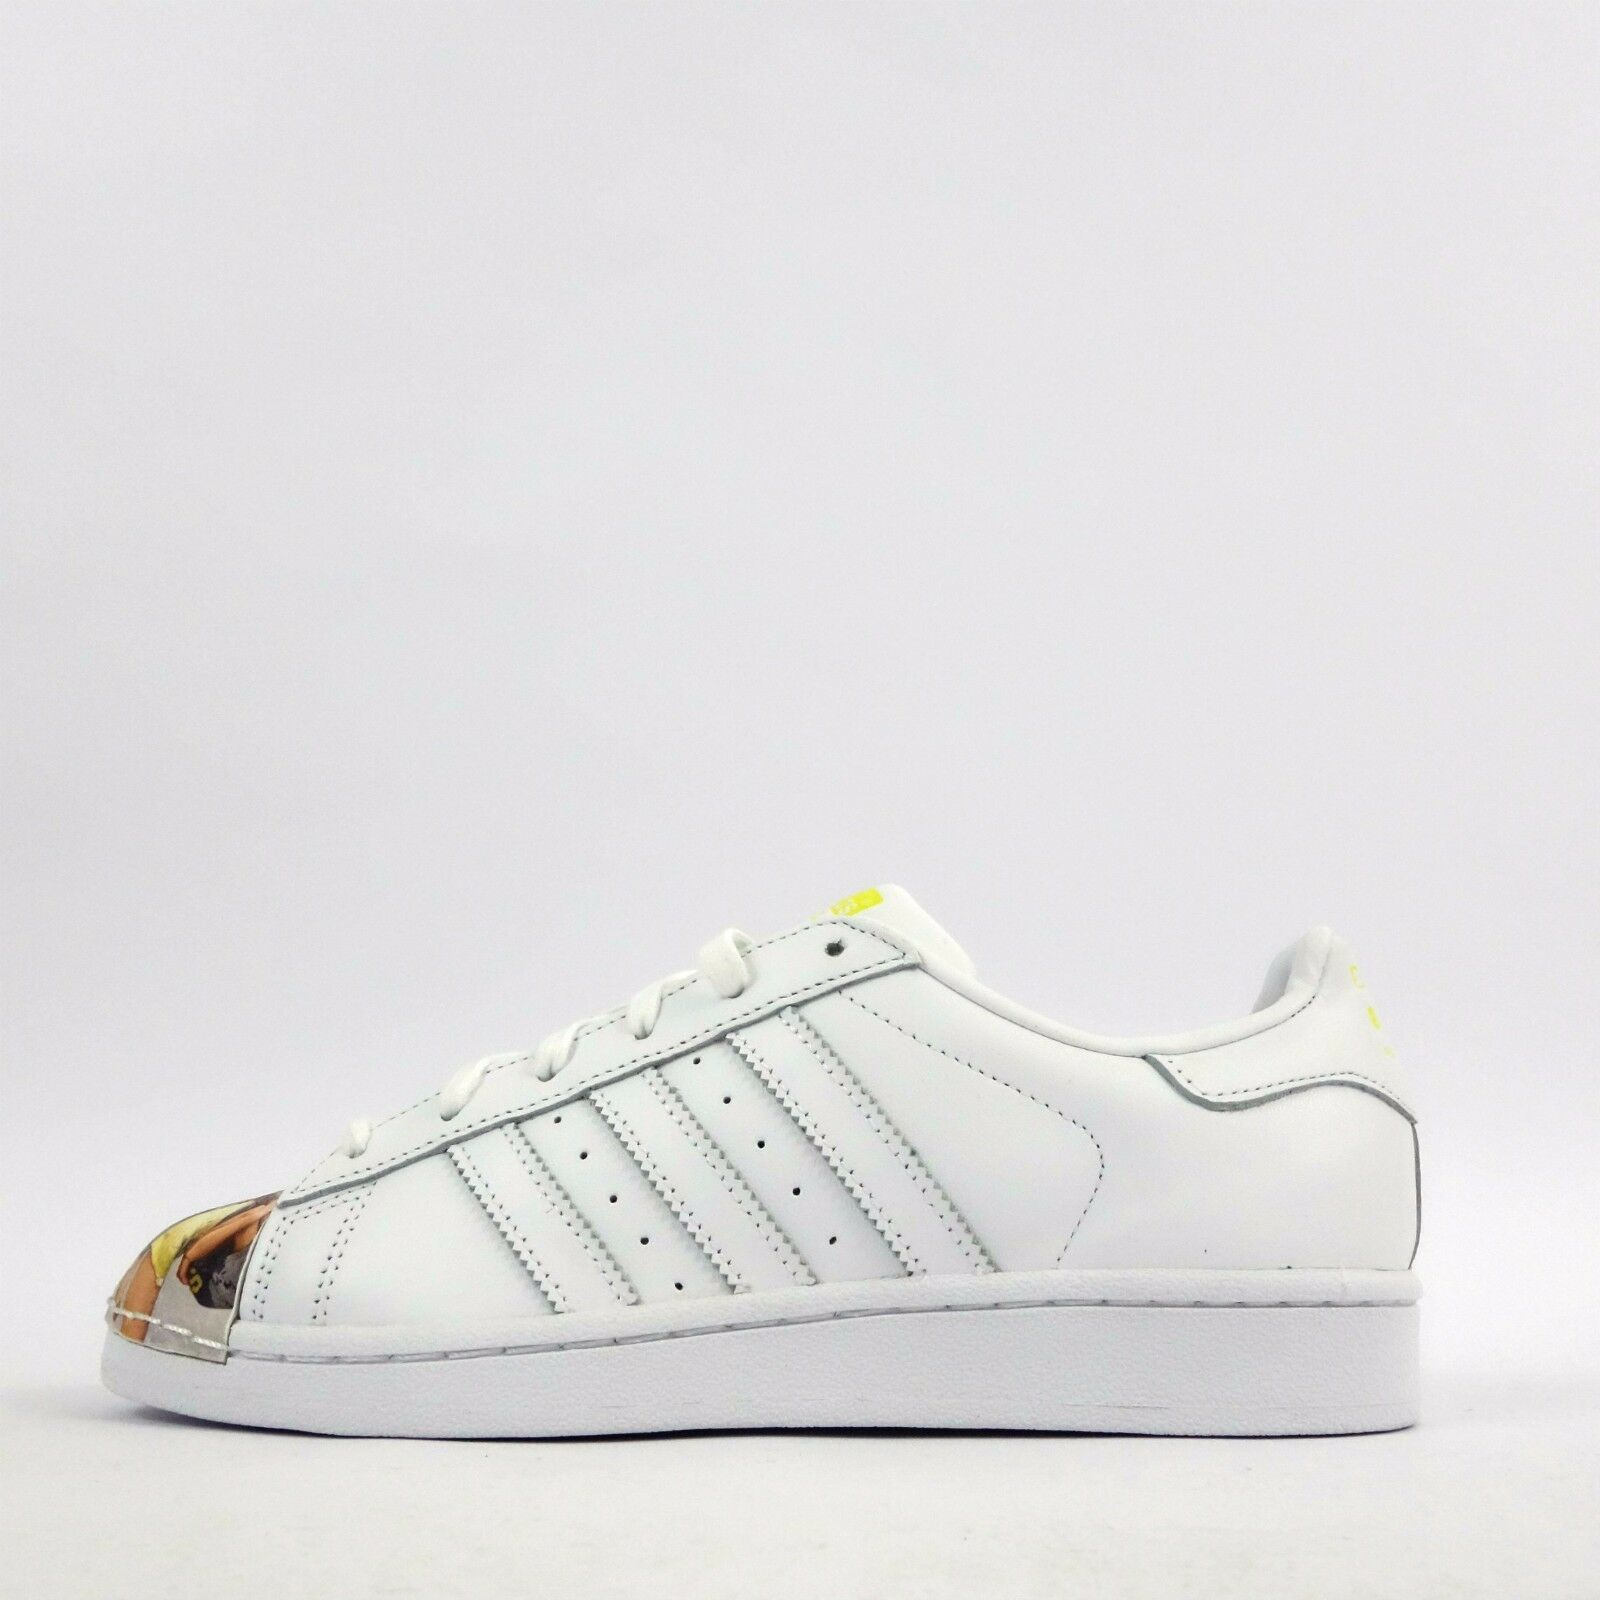 Adidas Originals Superstar Pharell Williams Supershell Mens Trainers shoes